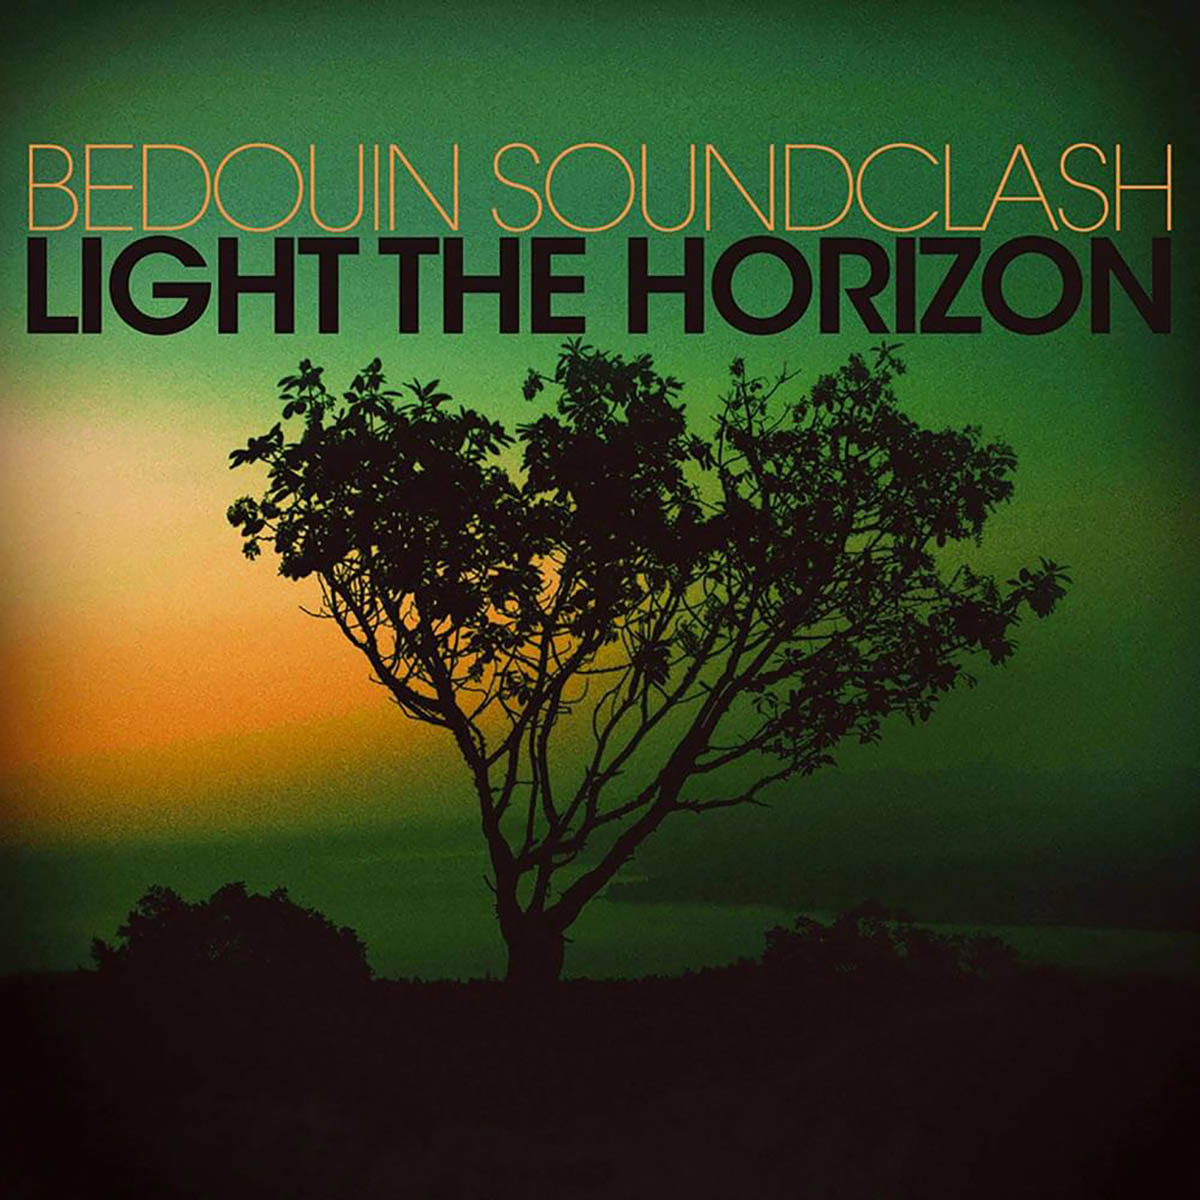 Bedouin Soundclash, Light the Horizon